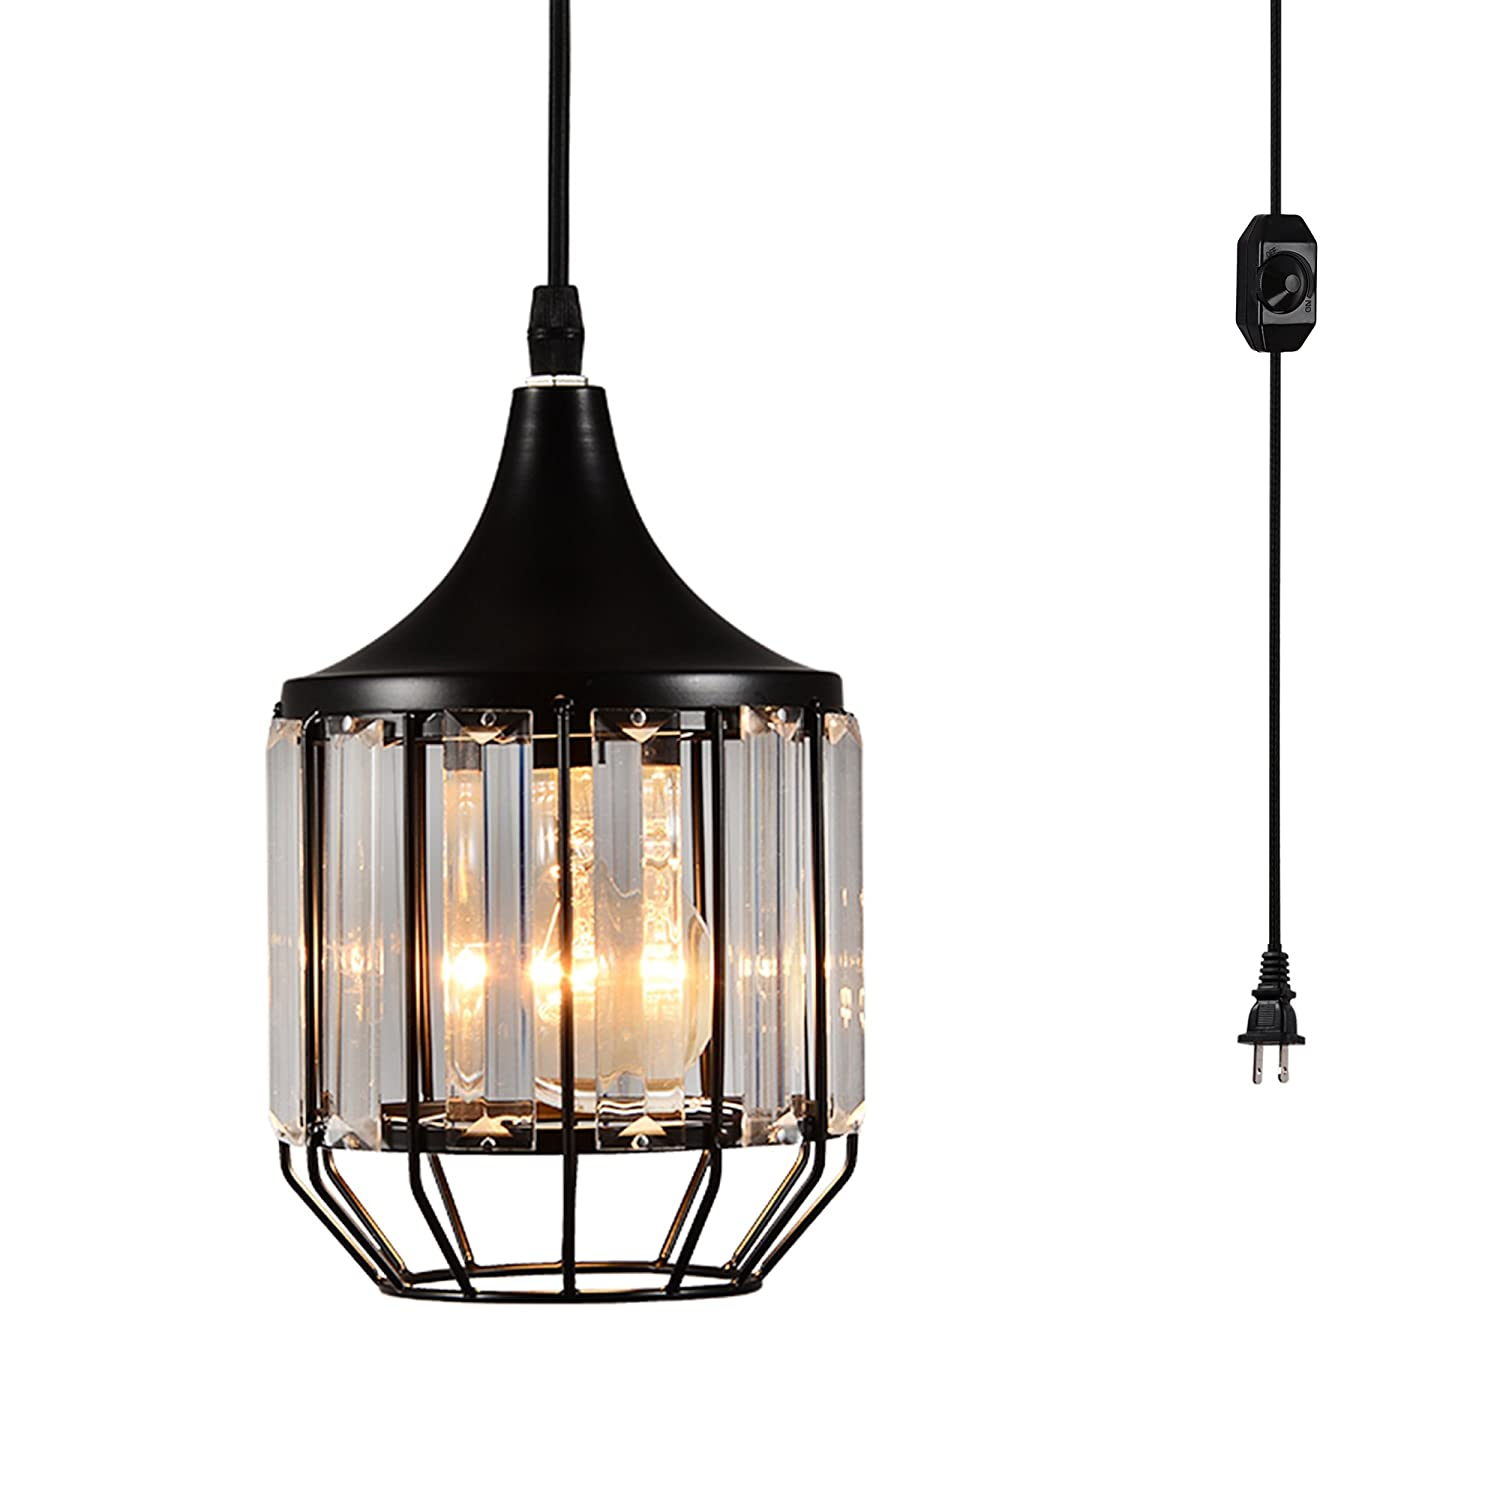 Creatgeek plug in crystal pendant light with 16 4(ft) cord and in line on off dimmer switch for kitchen island dining room black antique metal finish